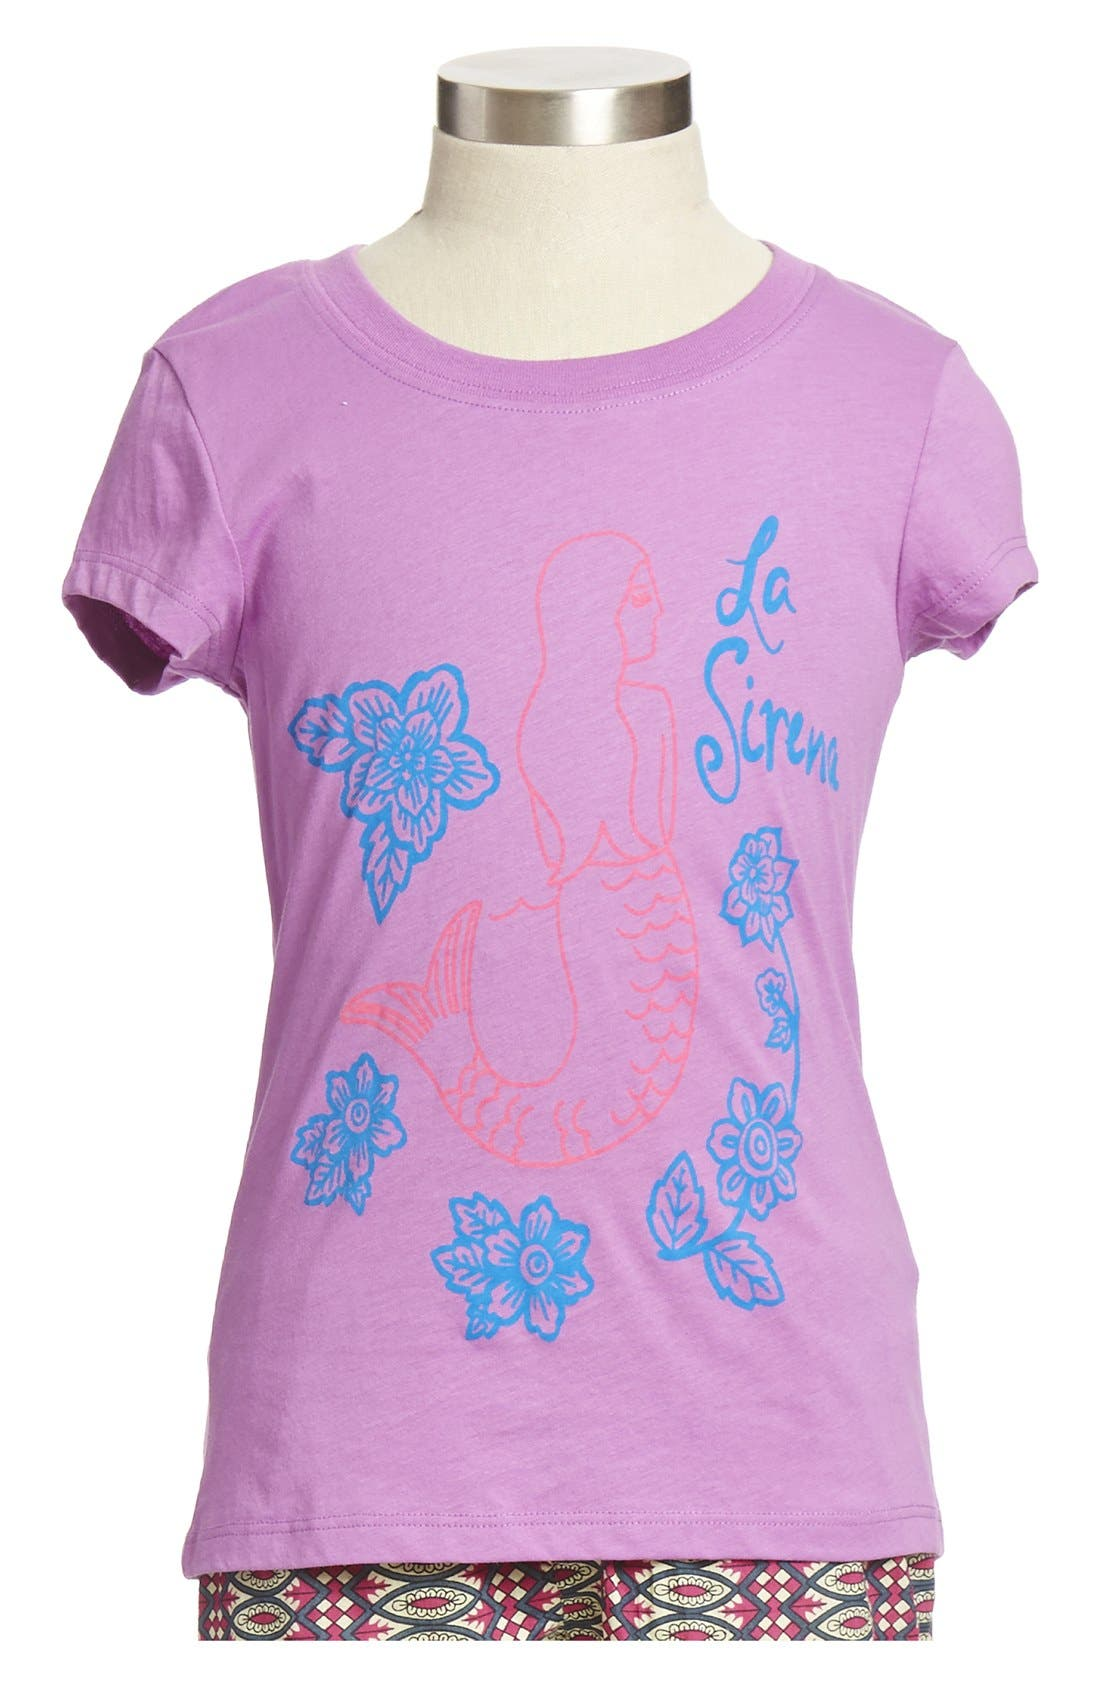 Alternate Image 1 Selected - Peek 'La Sirena' Graphic Cotton Tee (Toddler Girls, Little Girls & Big Girls)